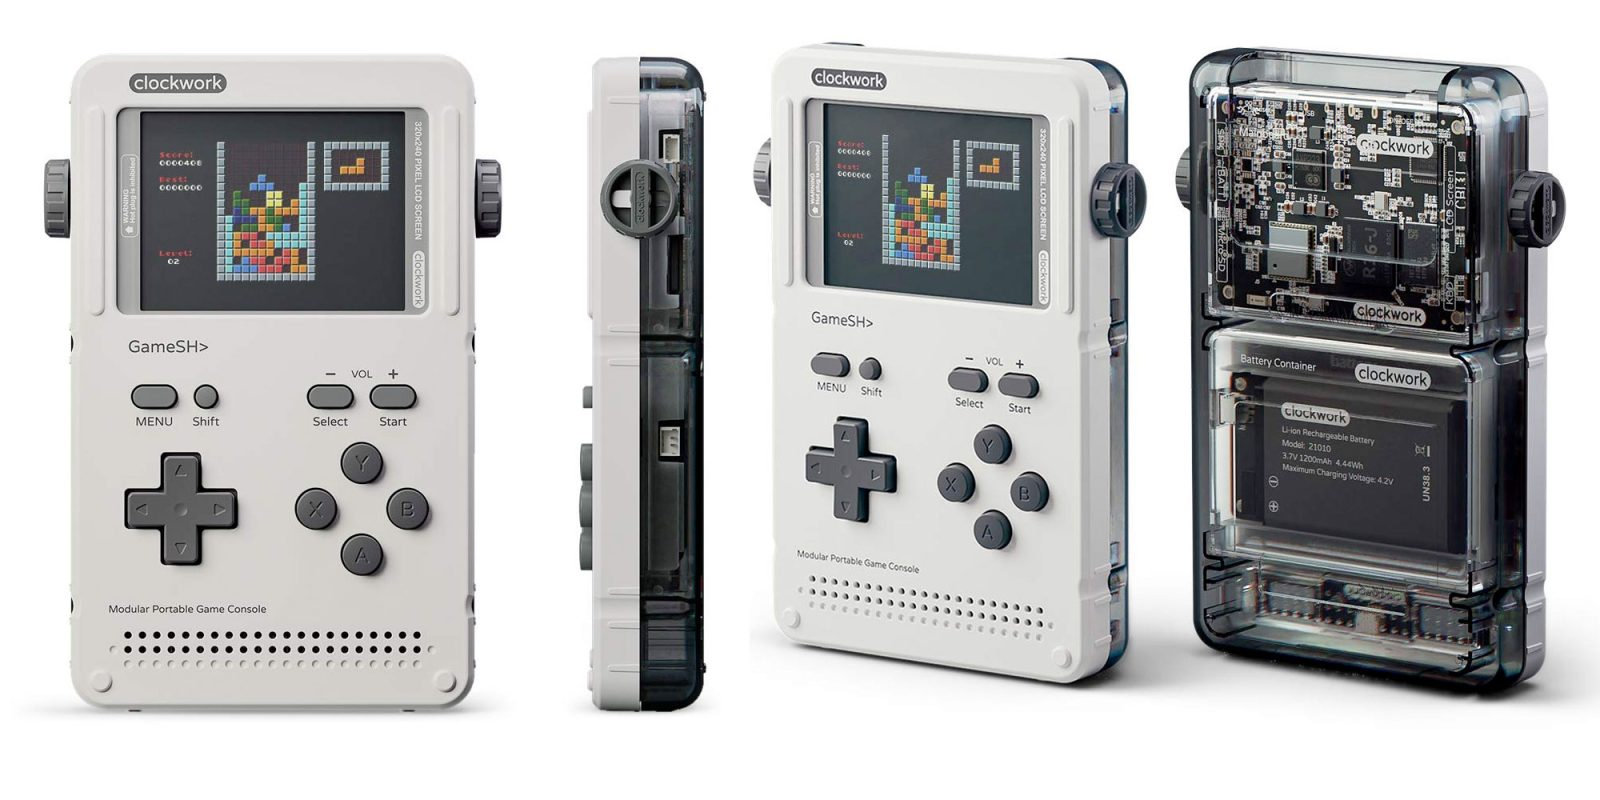 GameShell is a portable and modular DIY retro game console